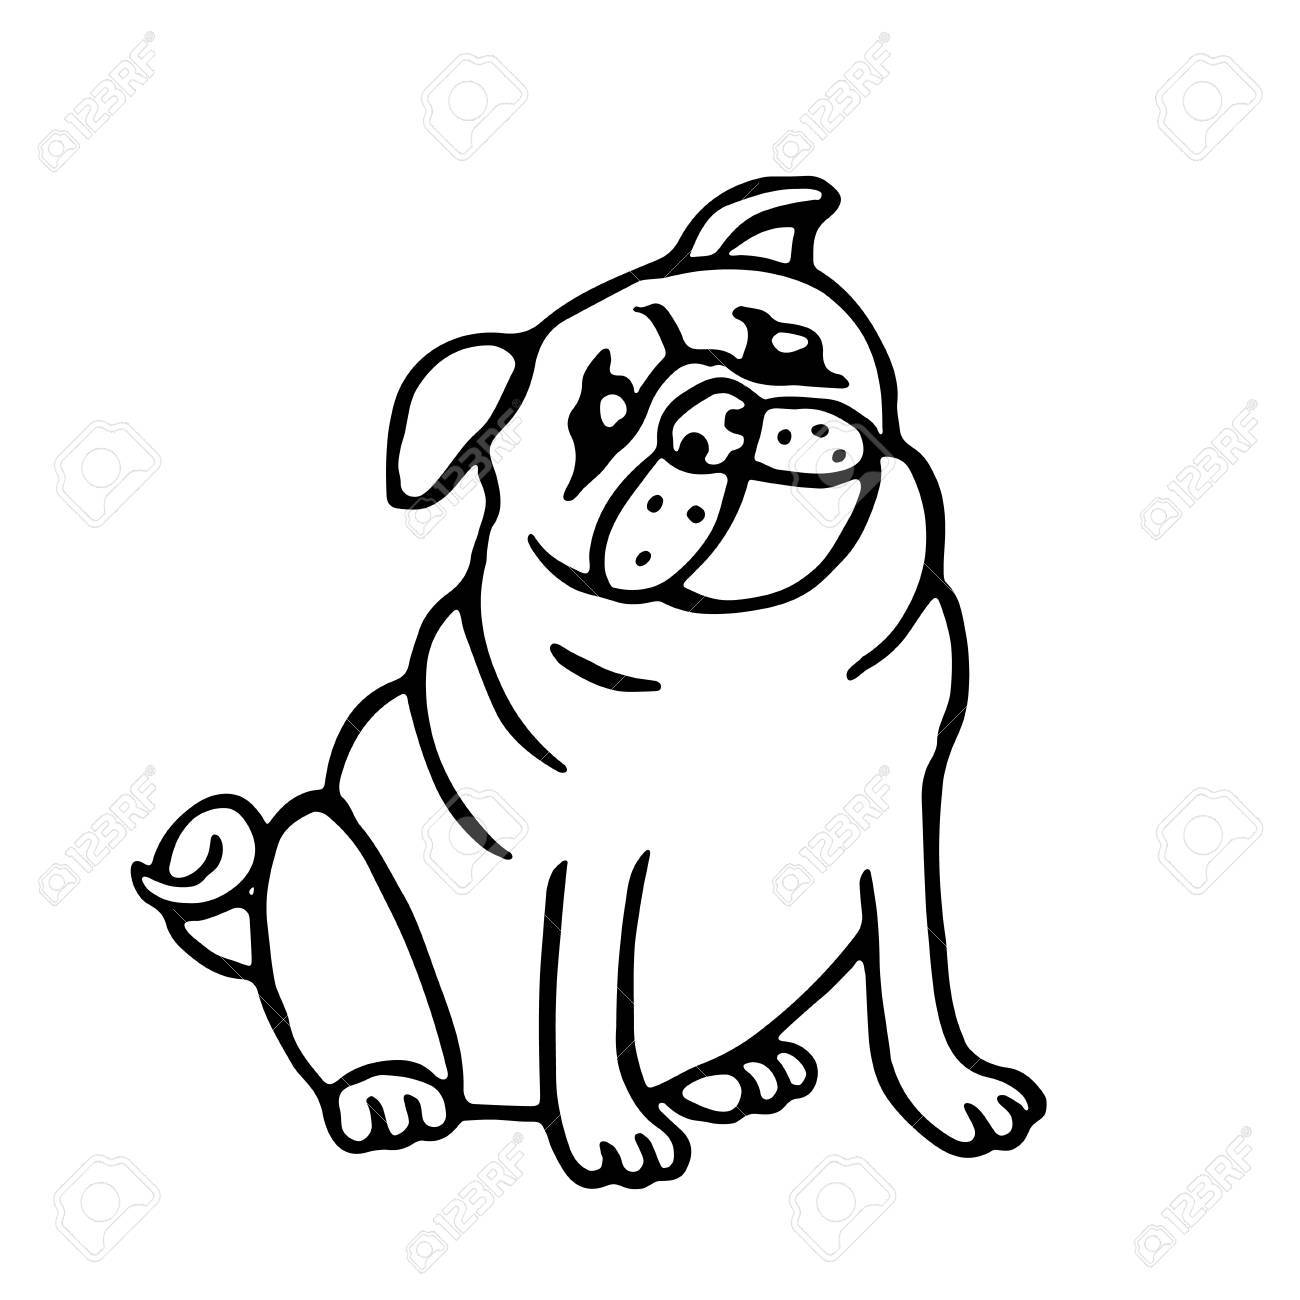 1300x1300 Cute Outline Pug. Isolated Vector Illustration. Funny Cartoon